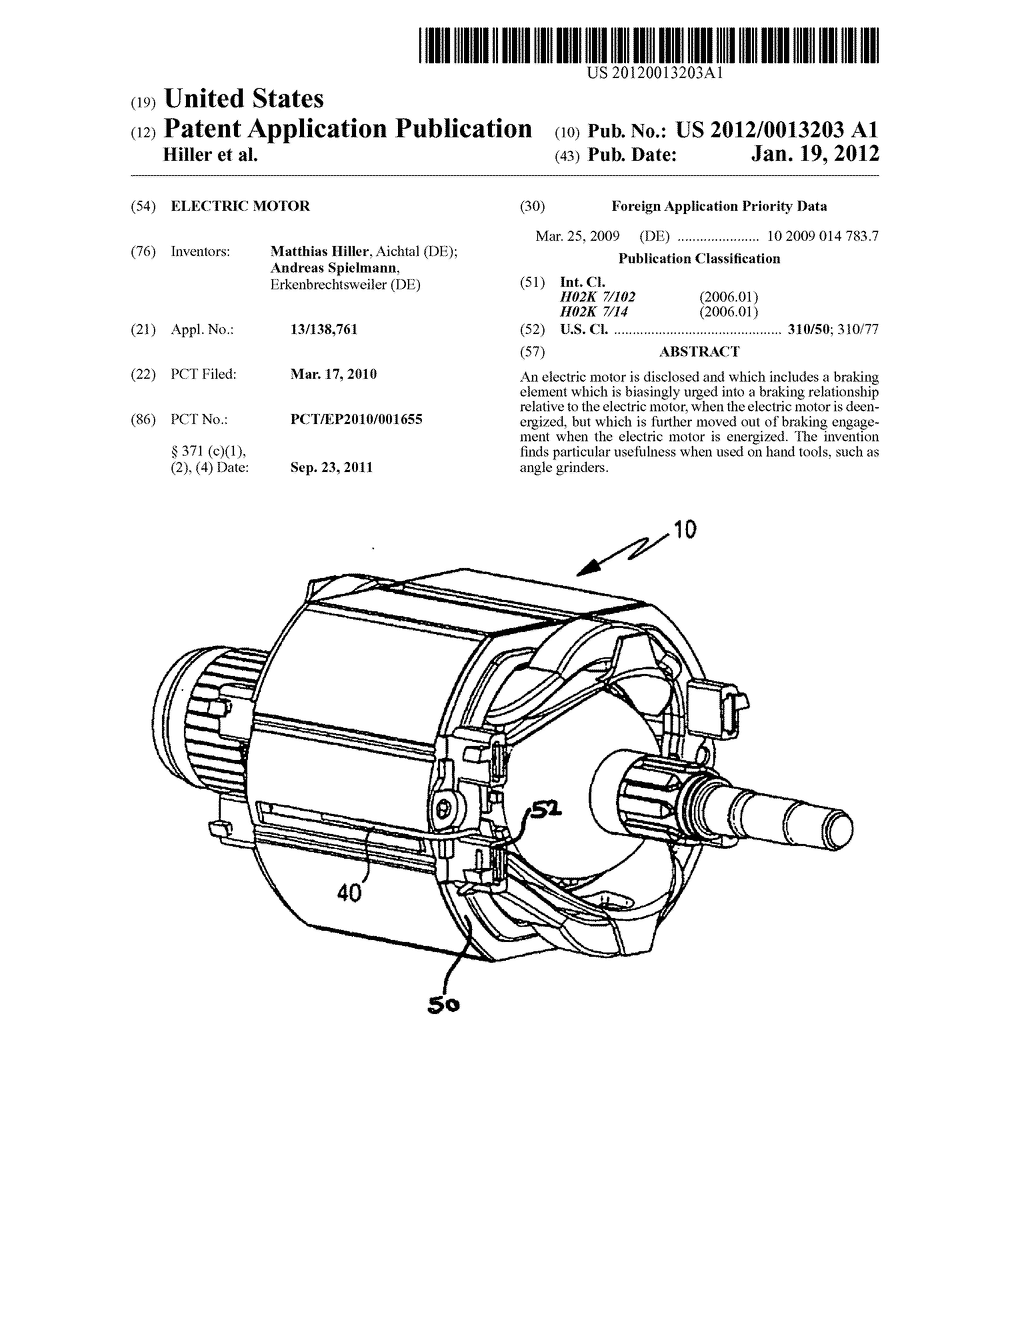 Electric Motor Components Diagram Electric Motor Wiring Diagram